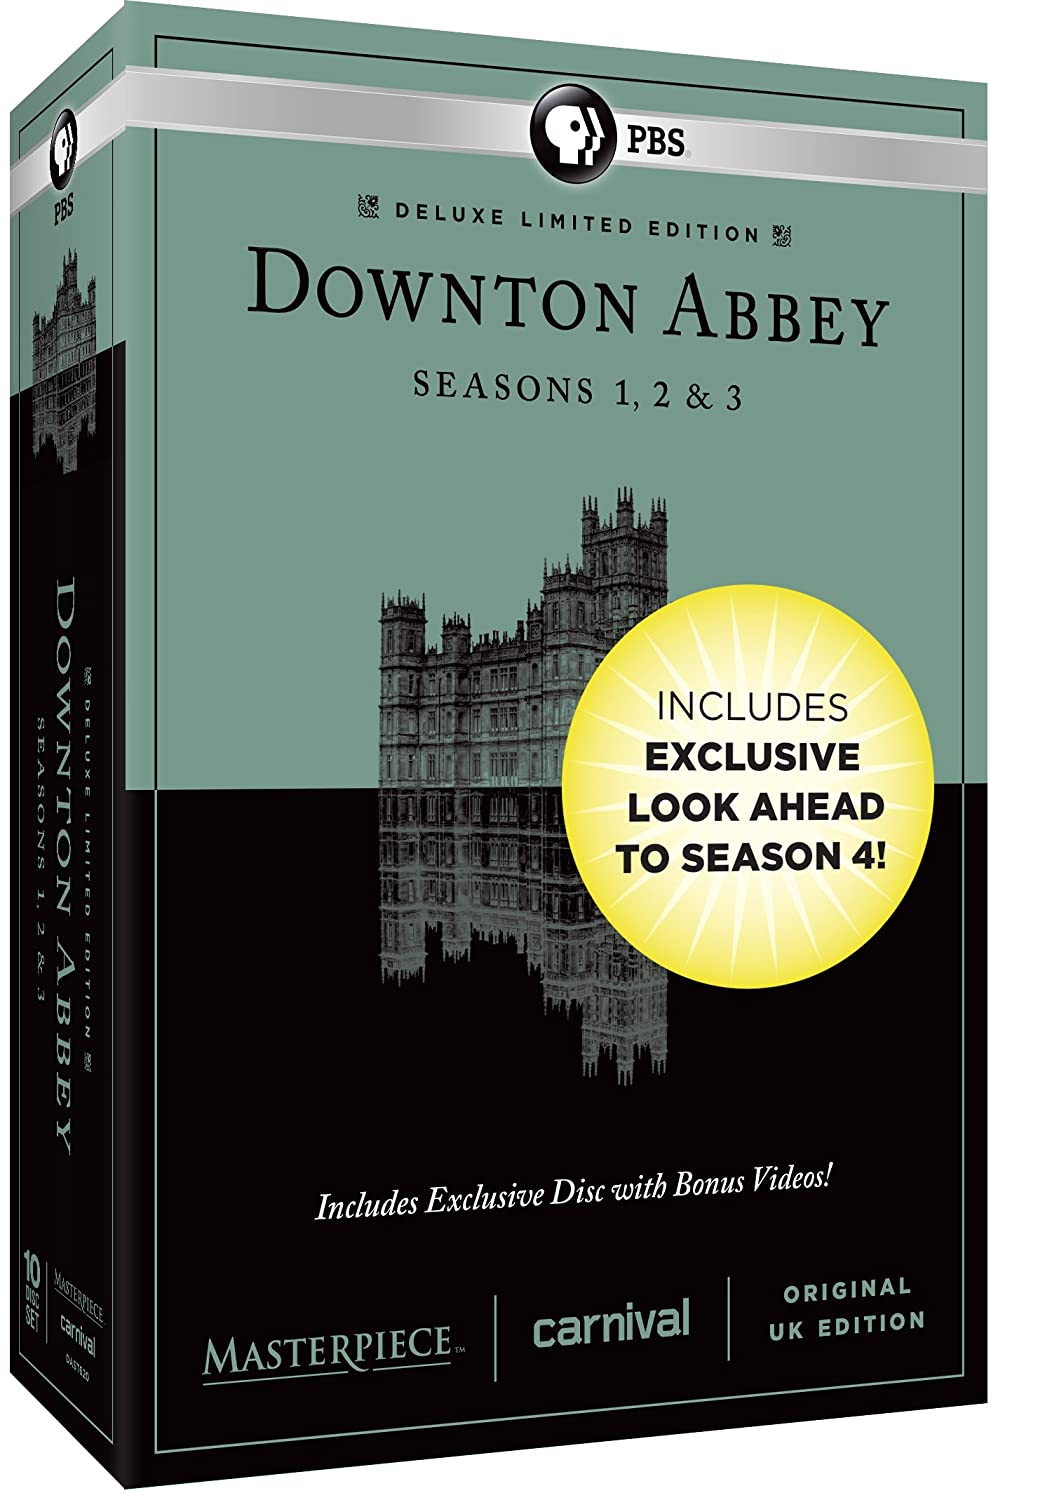 Masterpiece: Downton Abbey Seasons 1, 2 & 3 Deluxe Limited Edition (Amazon Exclusive Season 4 Bonus Features) $36.99